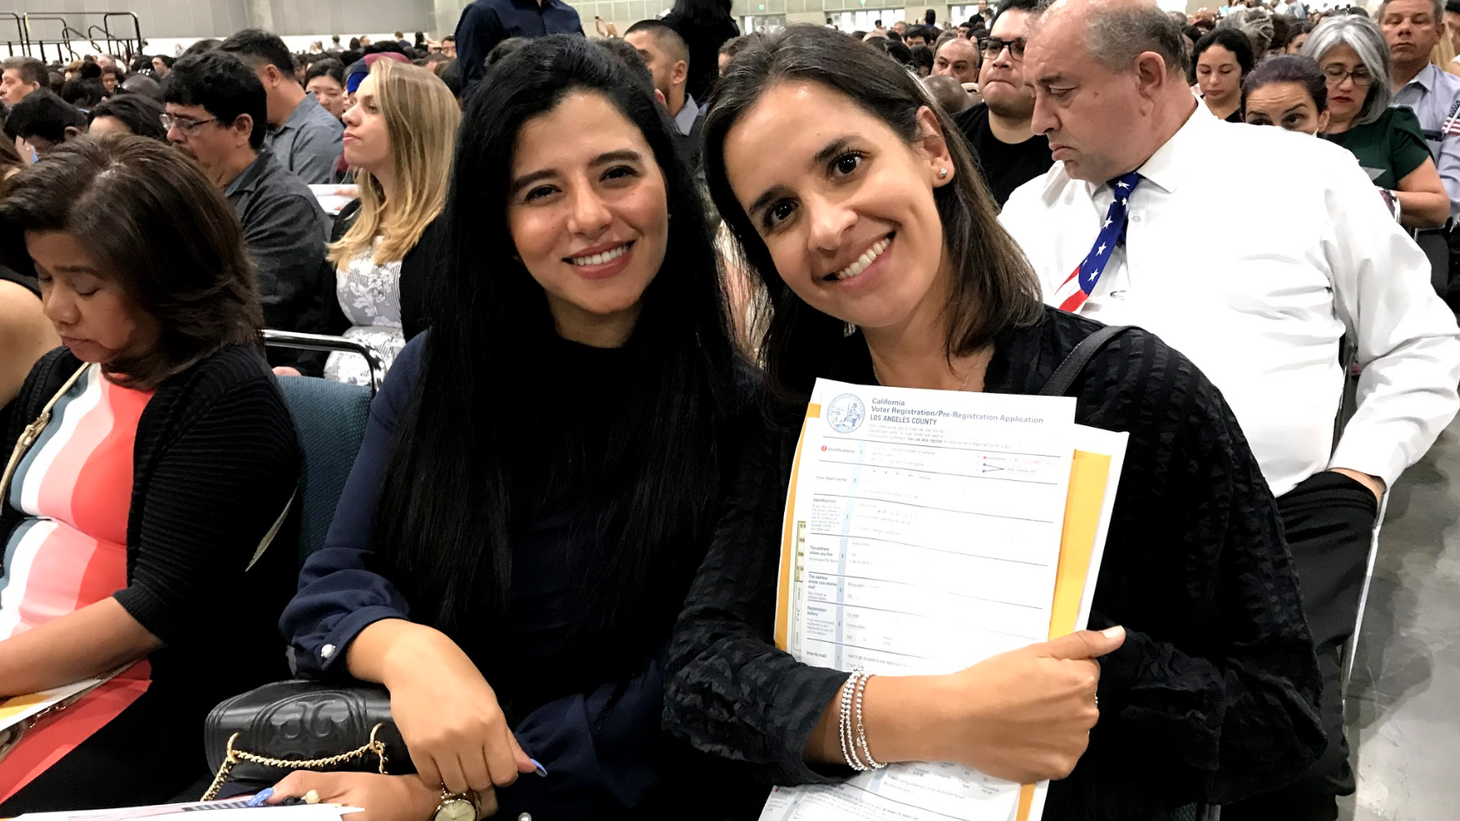 Sandra Abdel-Mesih (left) and Jenny Mora shortly before taking the Naturalization Oath of Allegiance to the United States of America during a ceremony at the LA Convention Center.